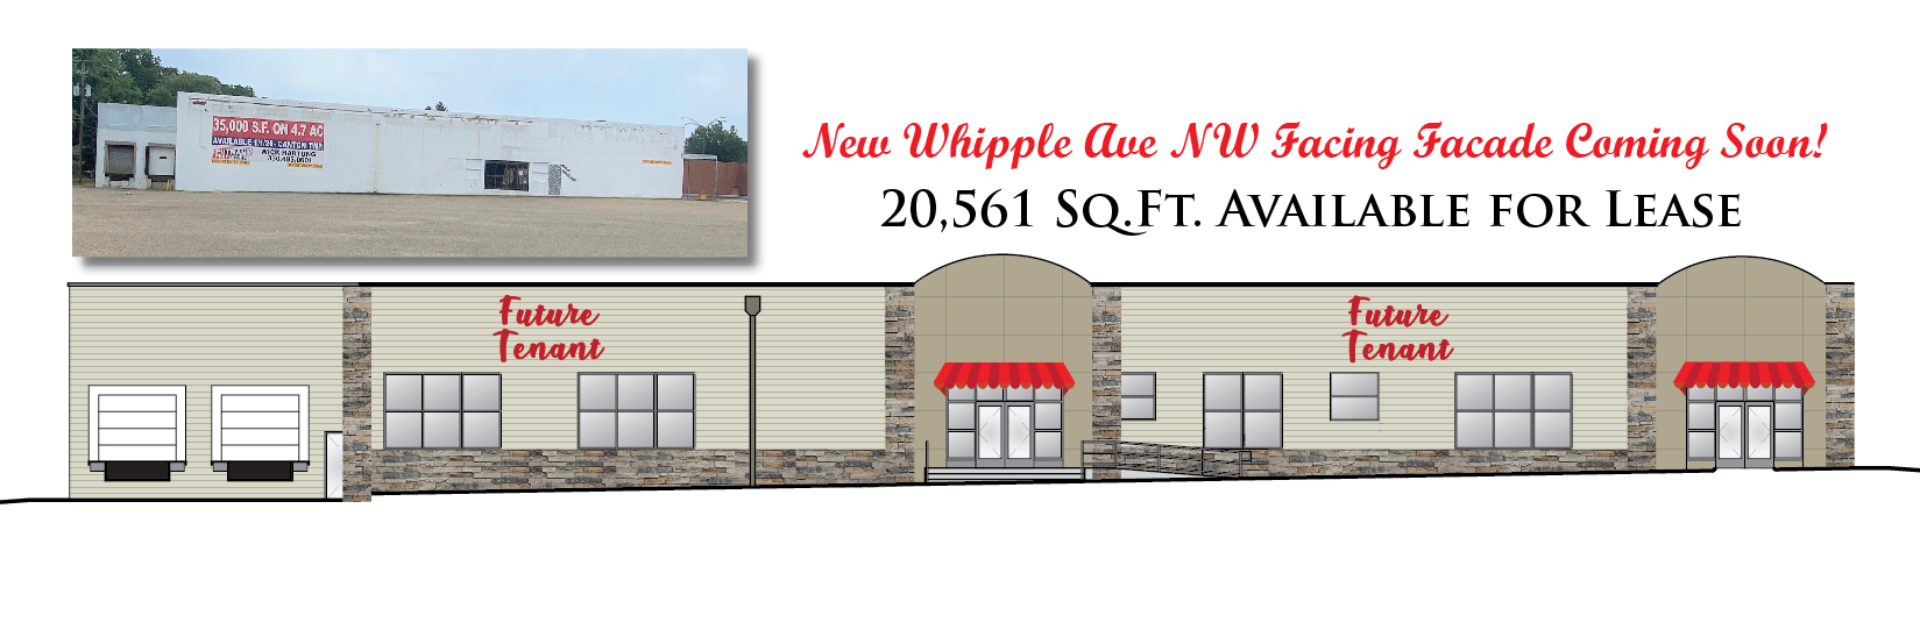 20,561 SQ.FT. WAREHOUSE & RETAIL FOR LEASE - Opportunity Zone